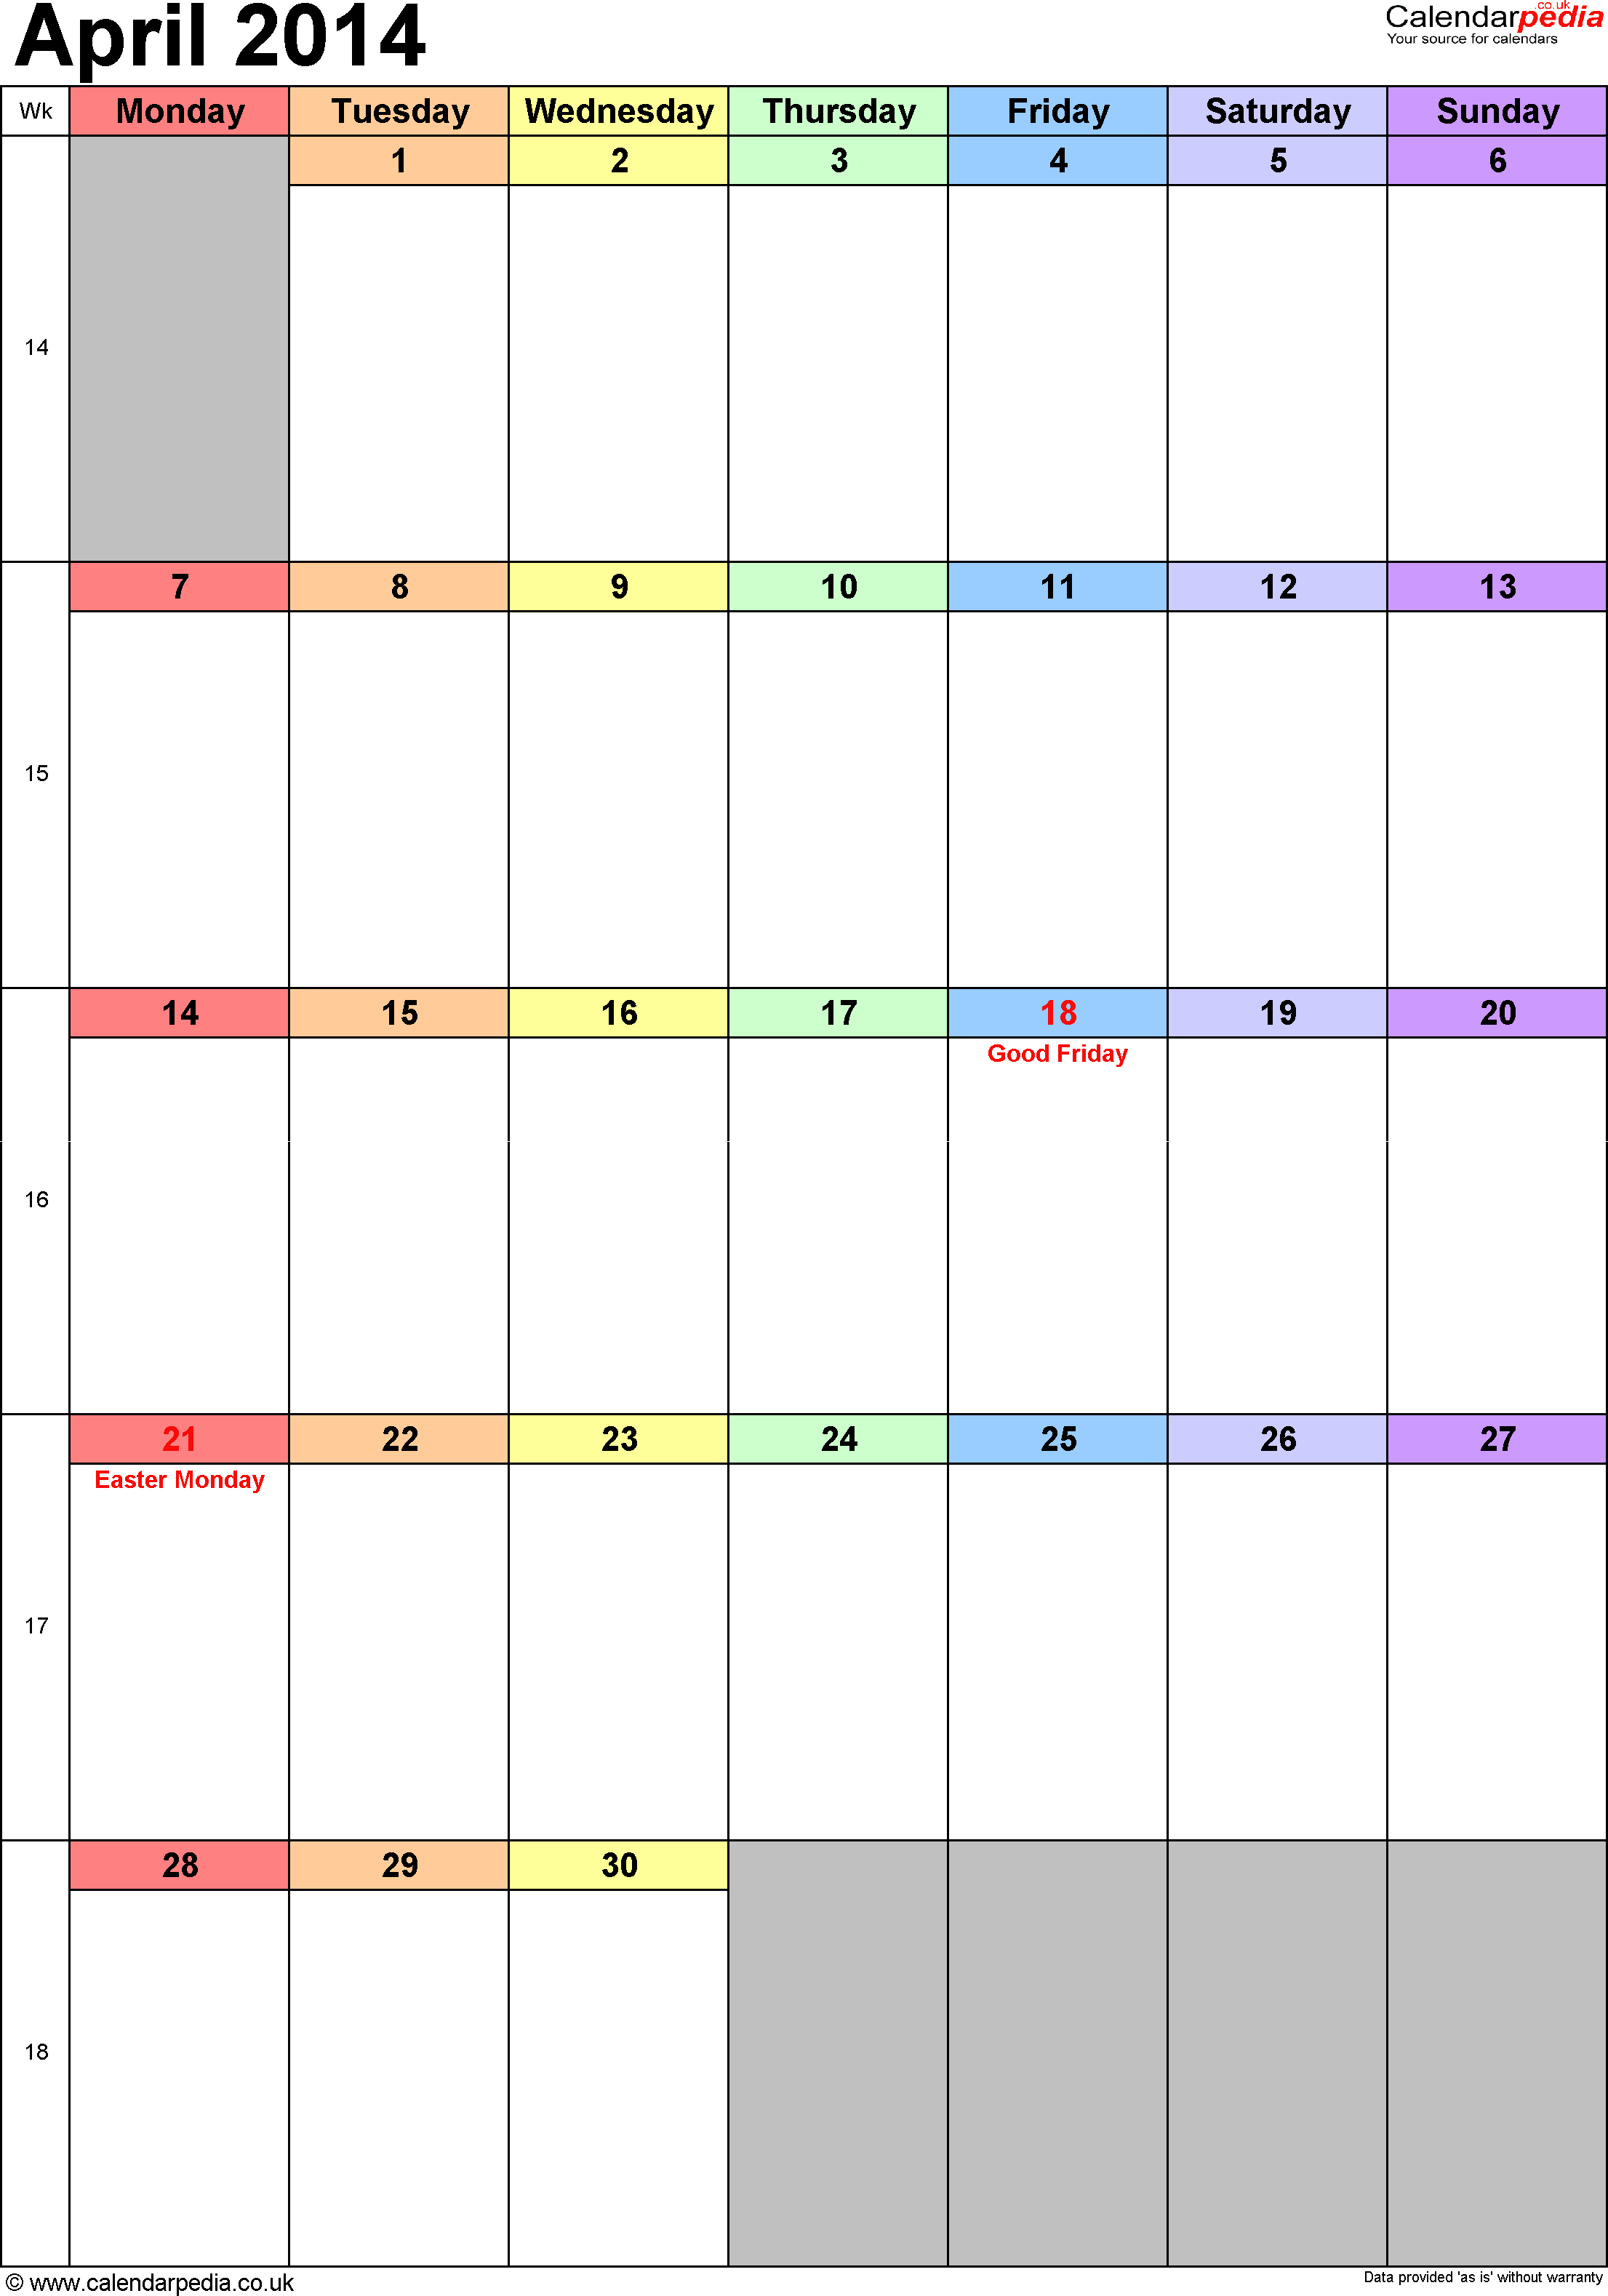 Calendar April 2014 portrait orientation, 1 page, with UK bank holidays and week numbers